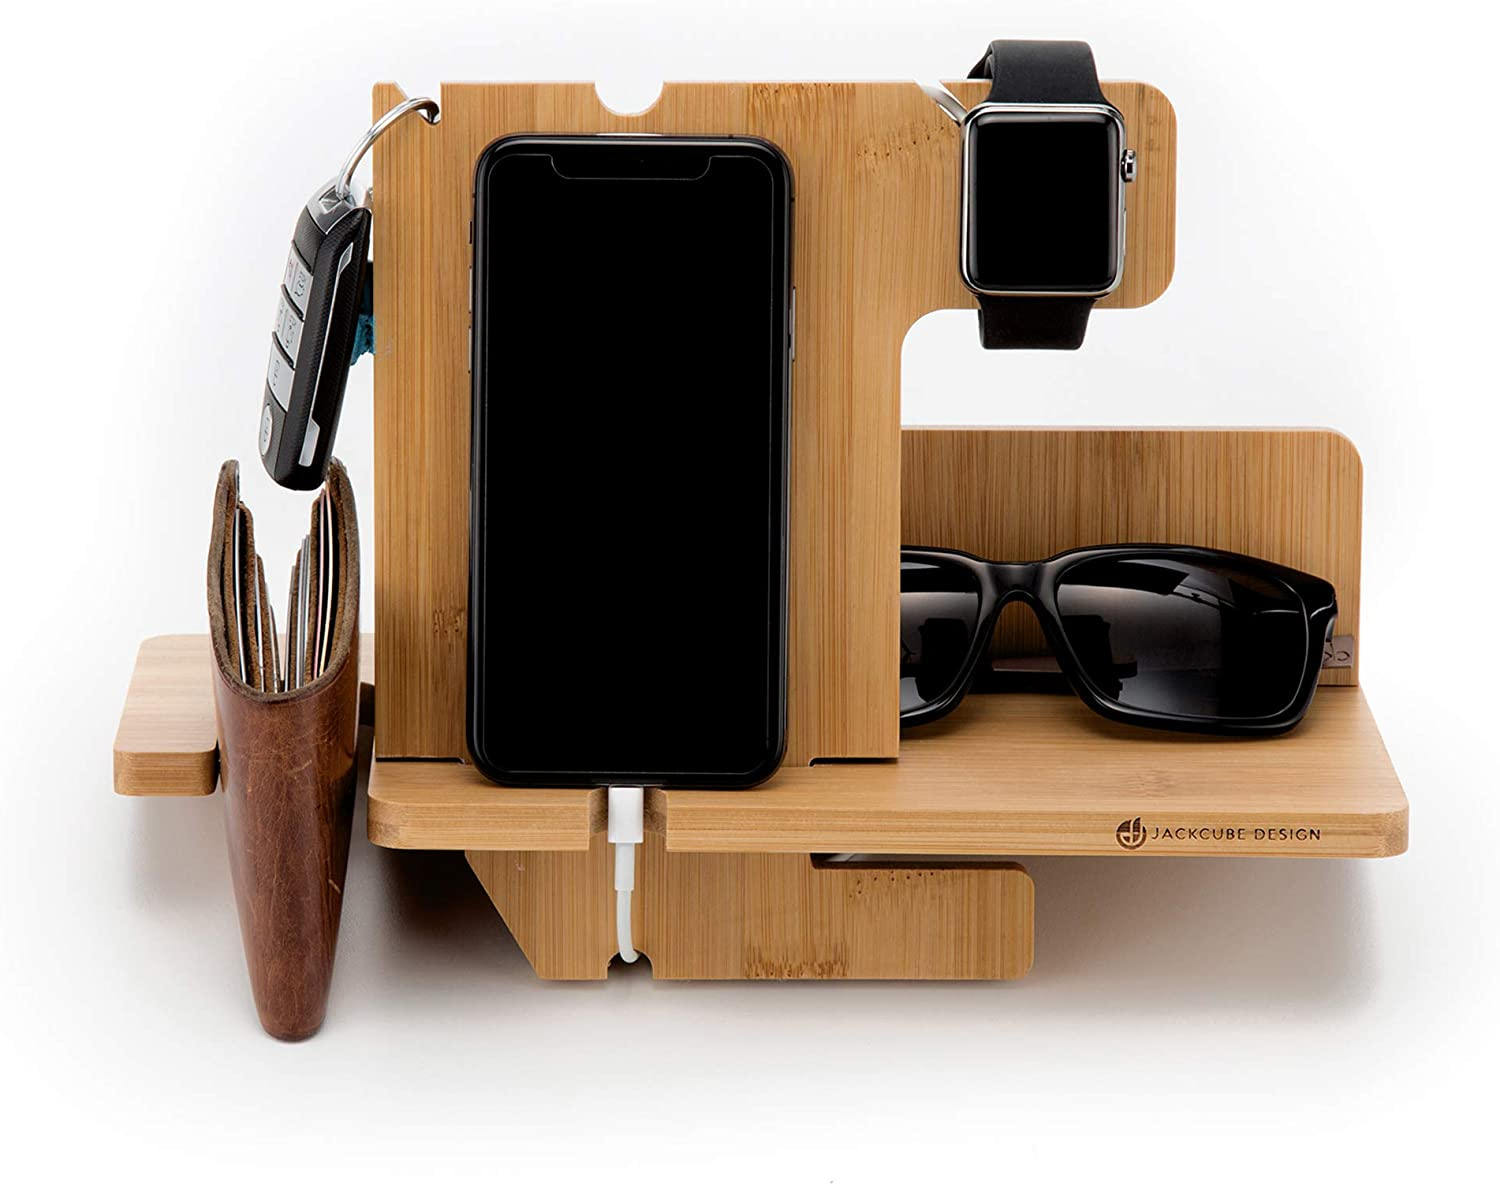 JackCubeDesign Bamboo iphone Apple Watch Charger dock Stand Multi Device Charging Station Organizer Holder for Smartphone Cellphone Mobile Wallet Glasses Key(Large) – MK242A